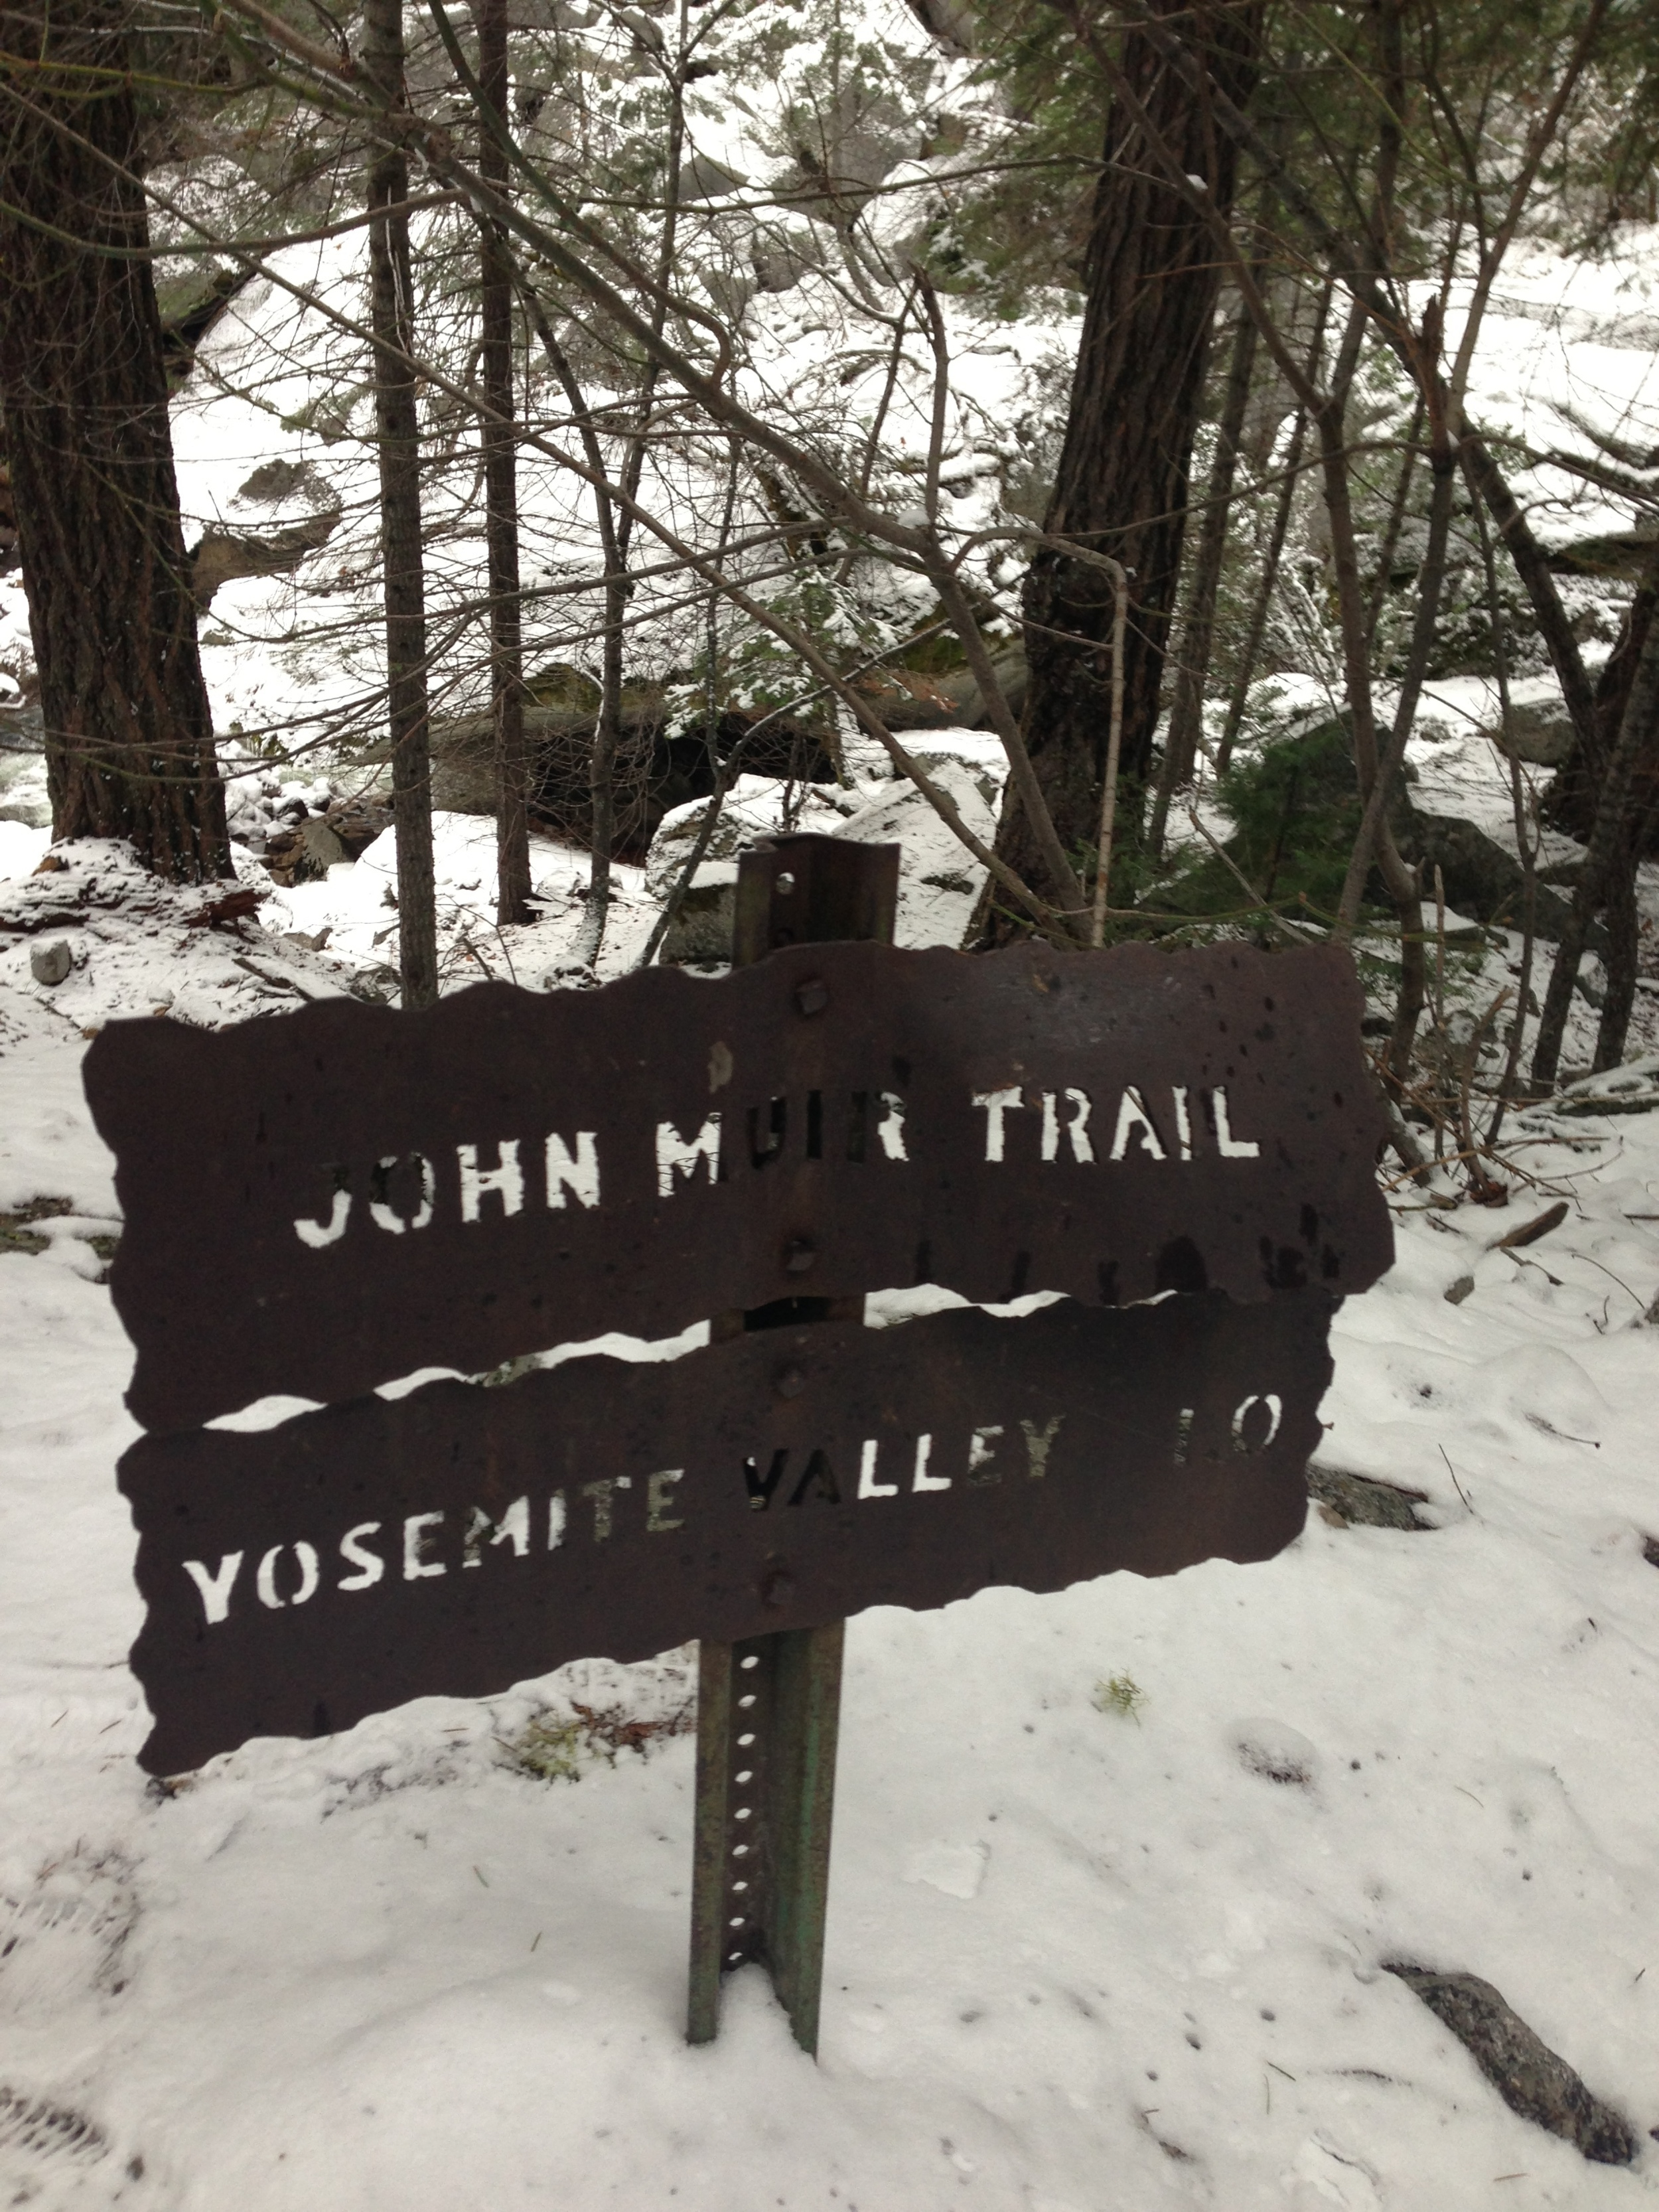 Sign of the John Muir Trail